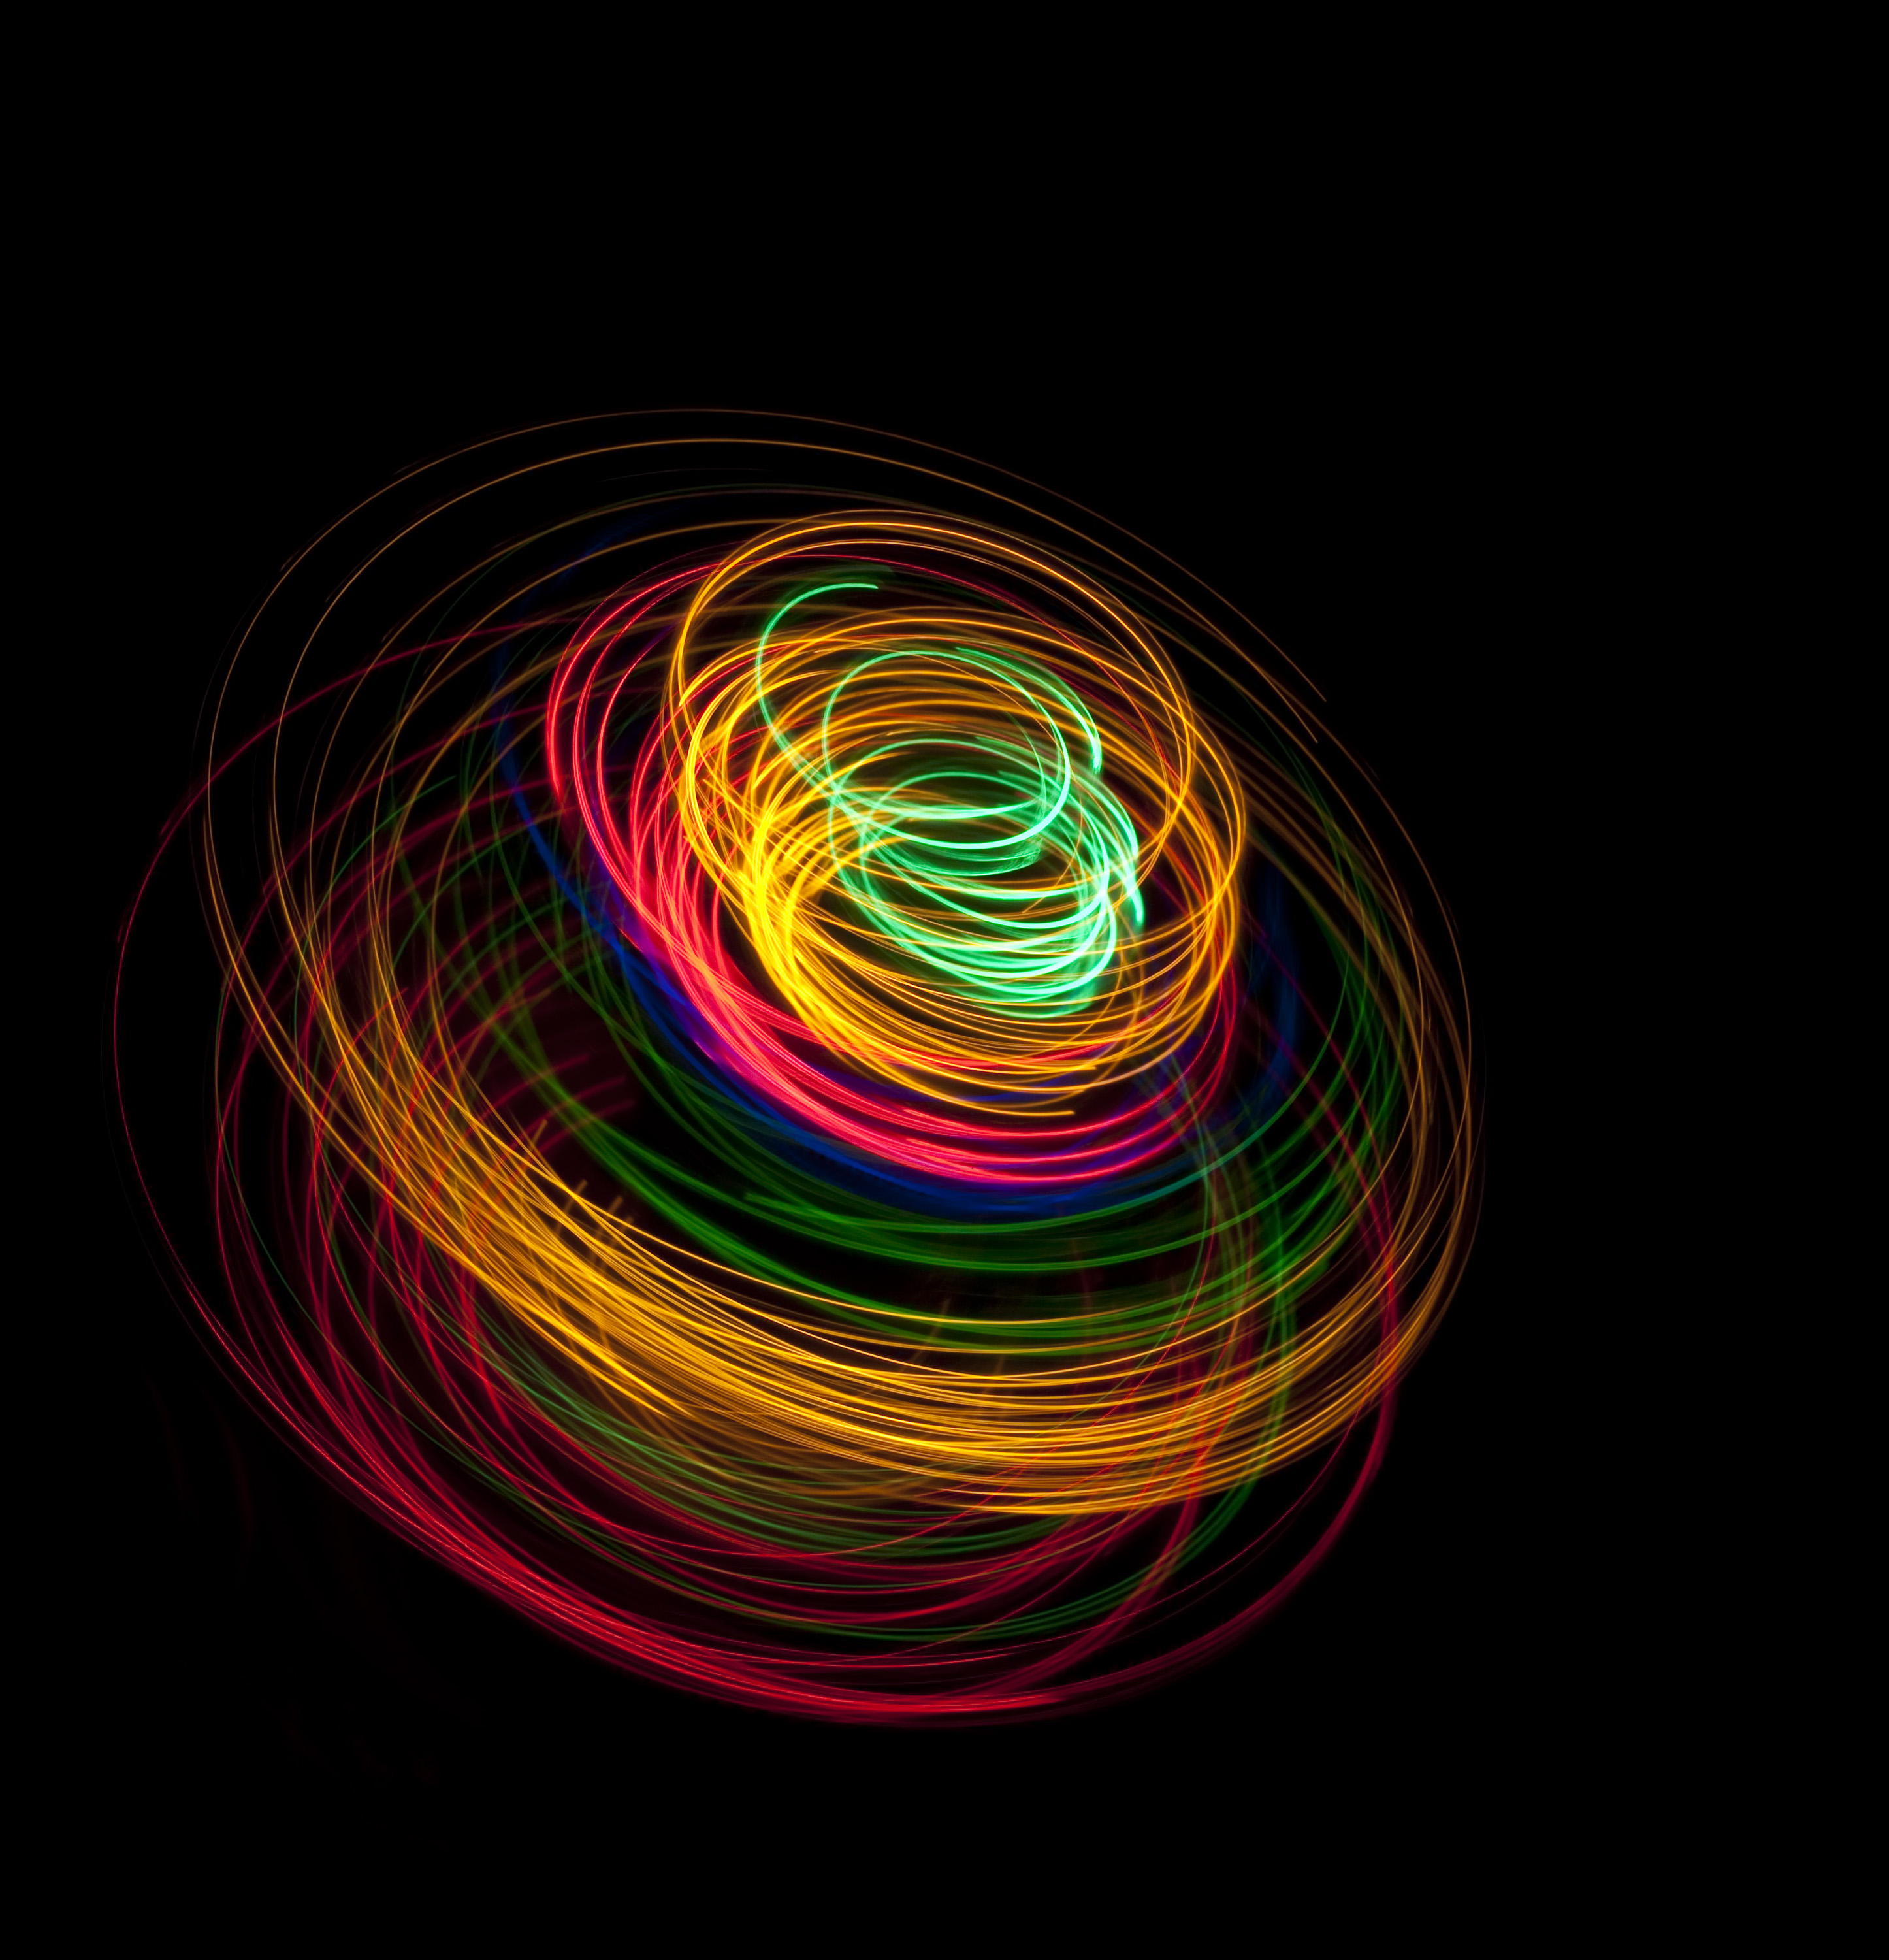 colorful light traces creating a 3d rotating effect